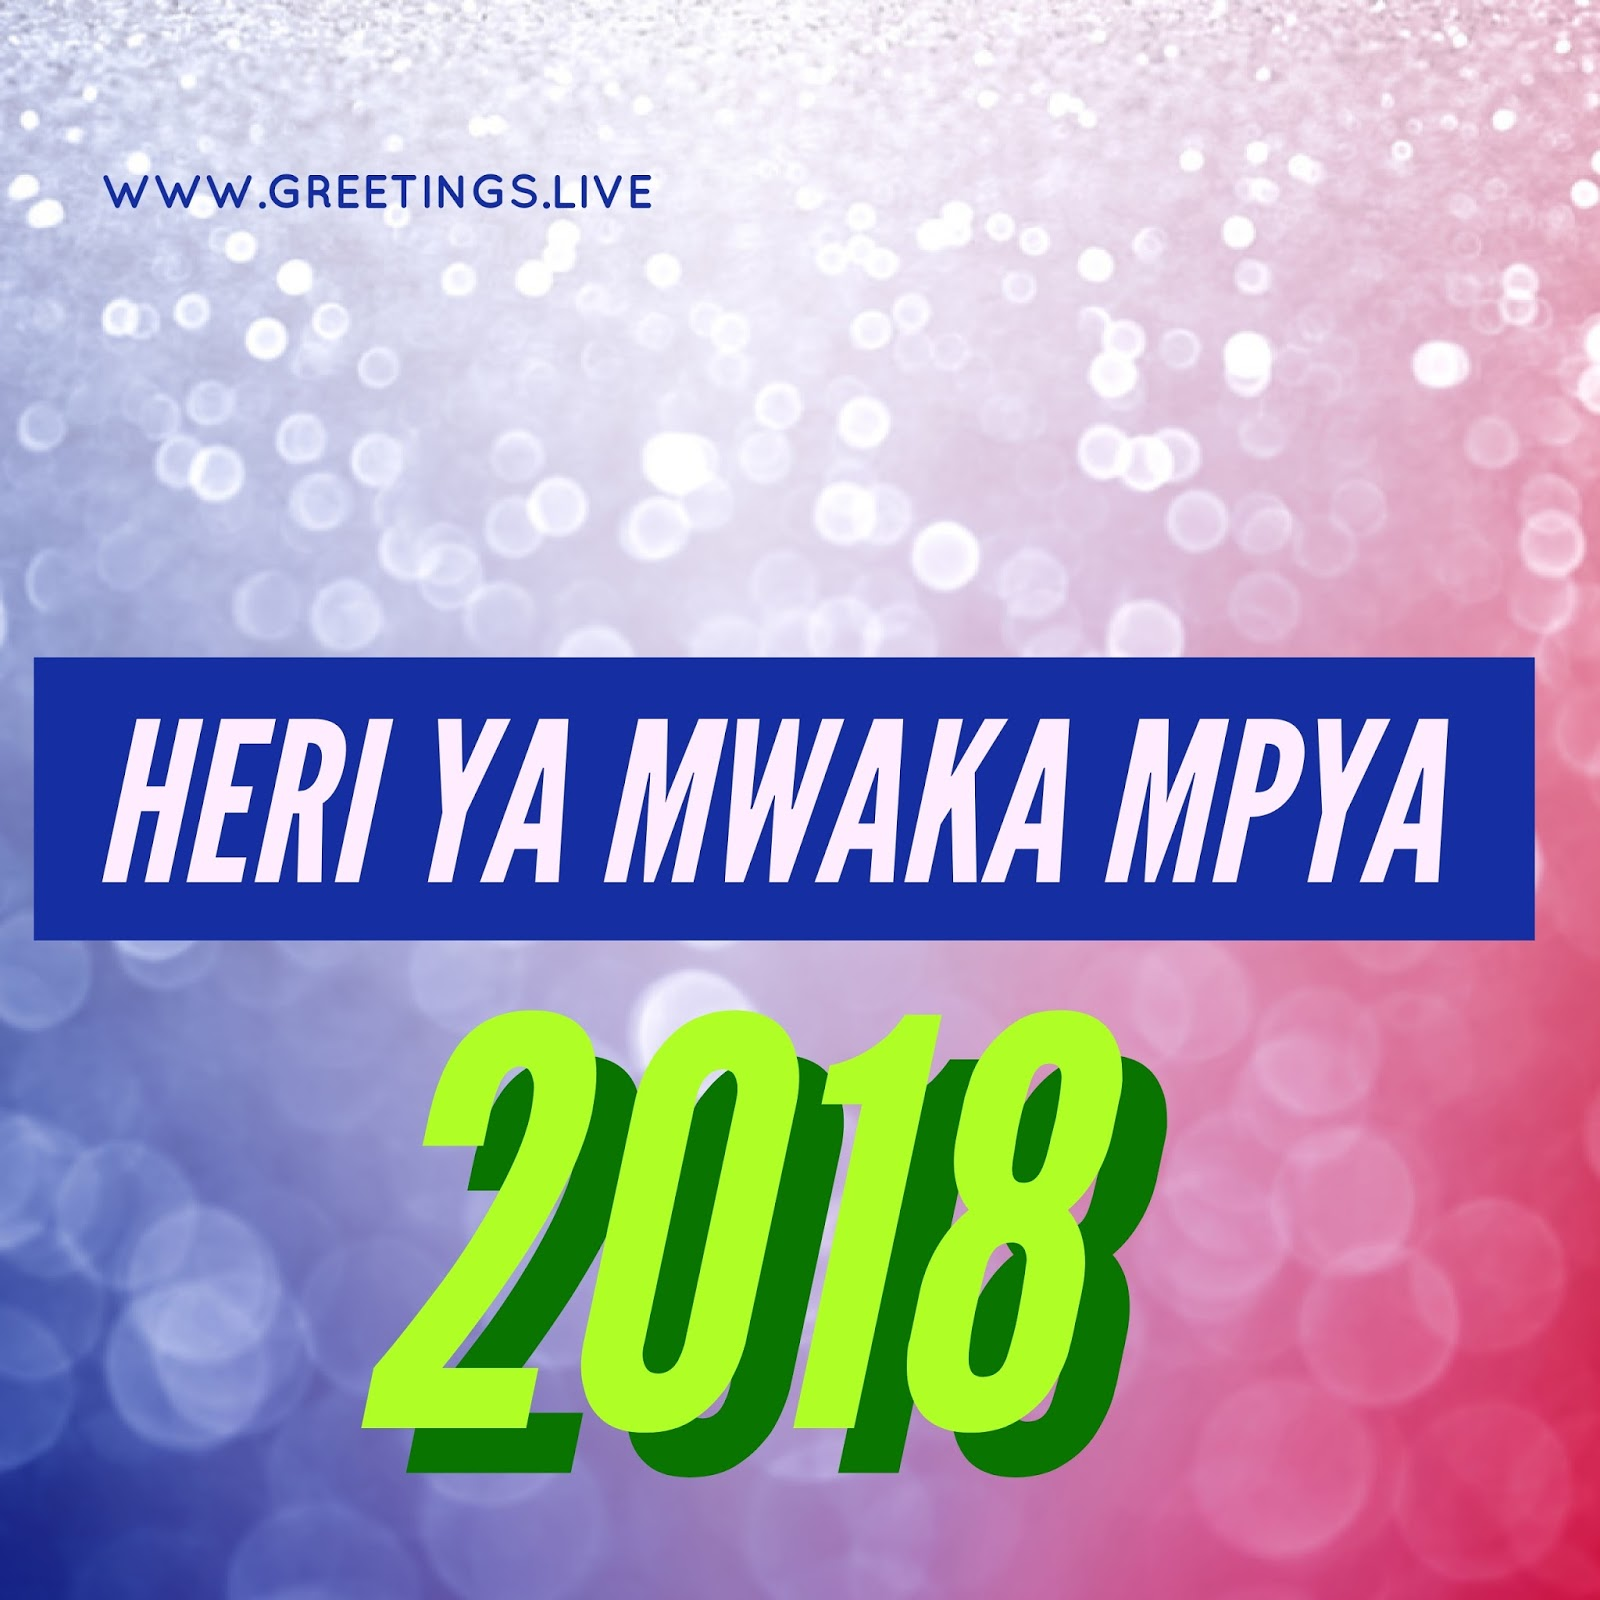 Greetingsve free hd images to express wishes all occasions happy new year in swahili language m4hsunfo Choice Image